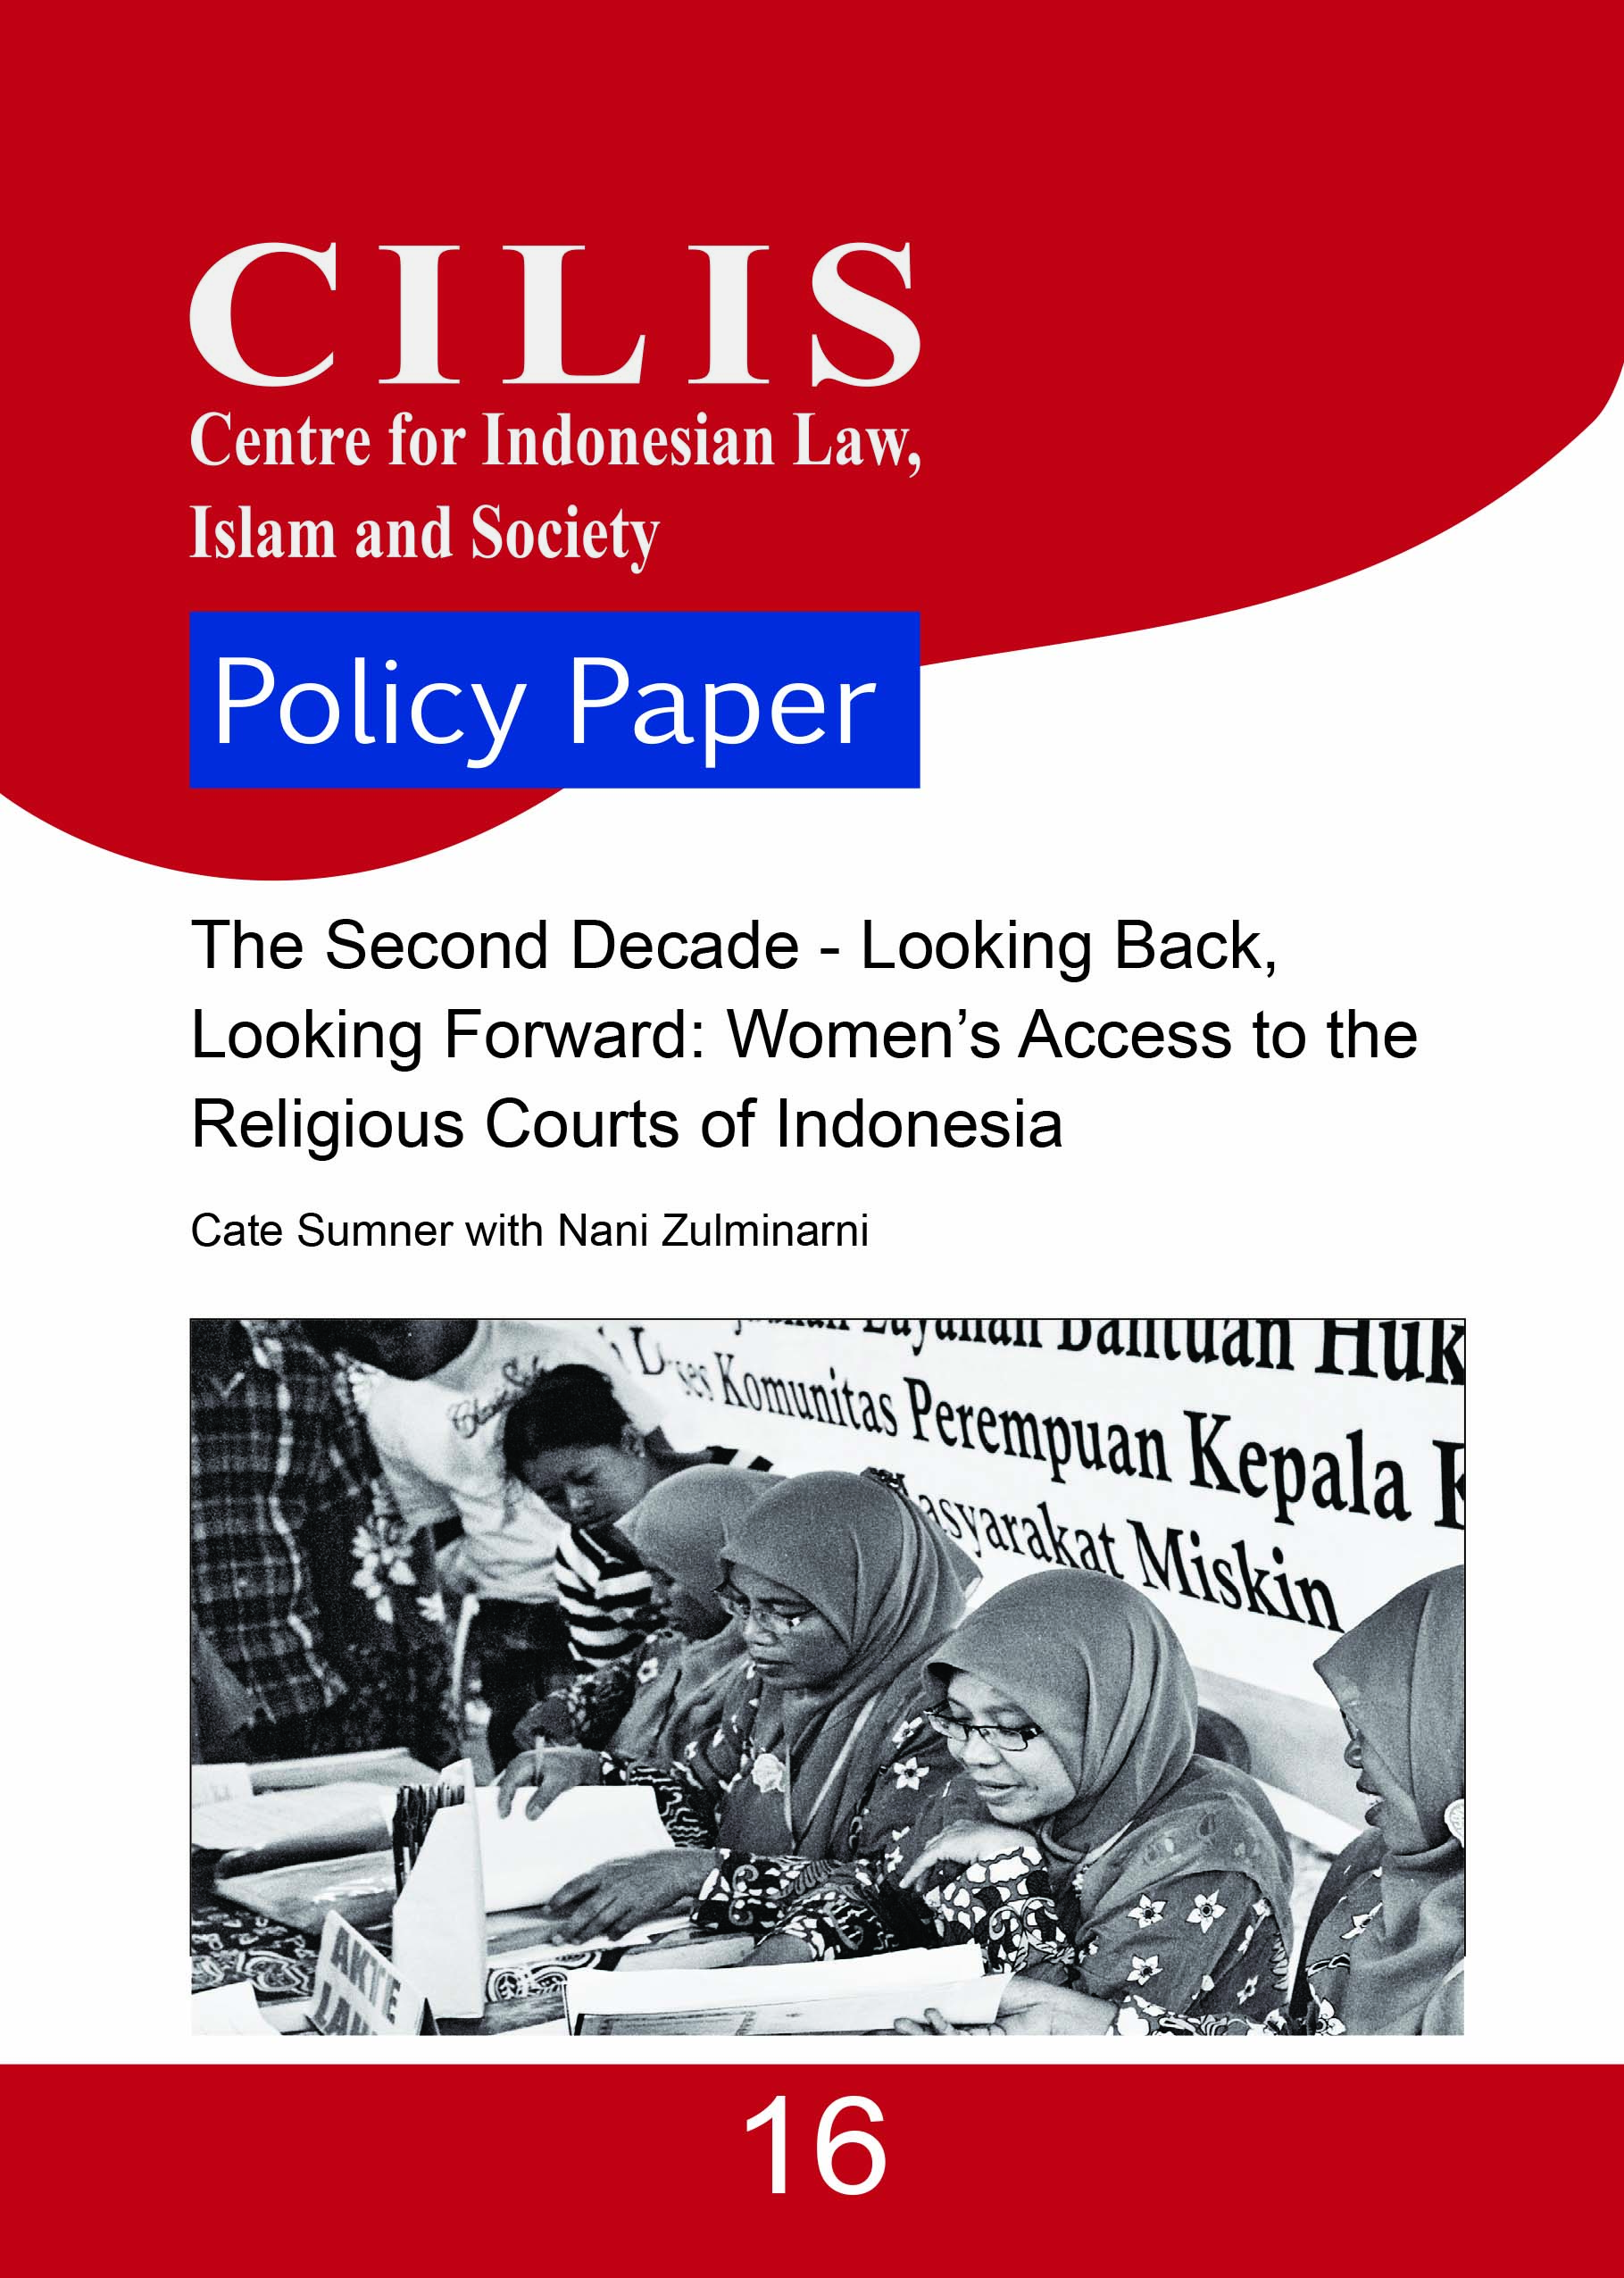 Reflecting on over a decade of collaboration that has contributed to more than a million more women accessing the Indonesian family courts for Muslims known as the Religious Courts, this…